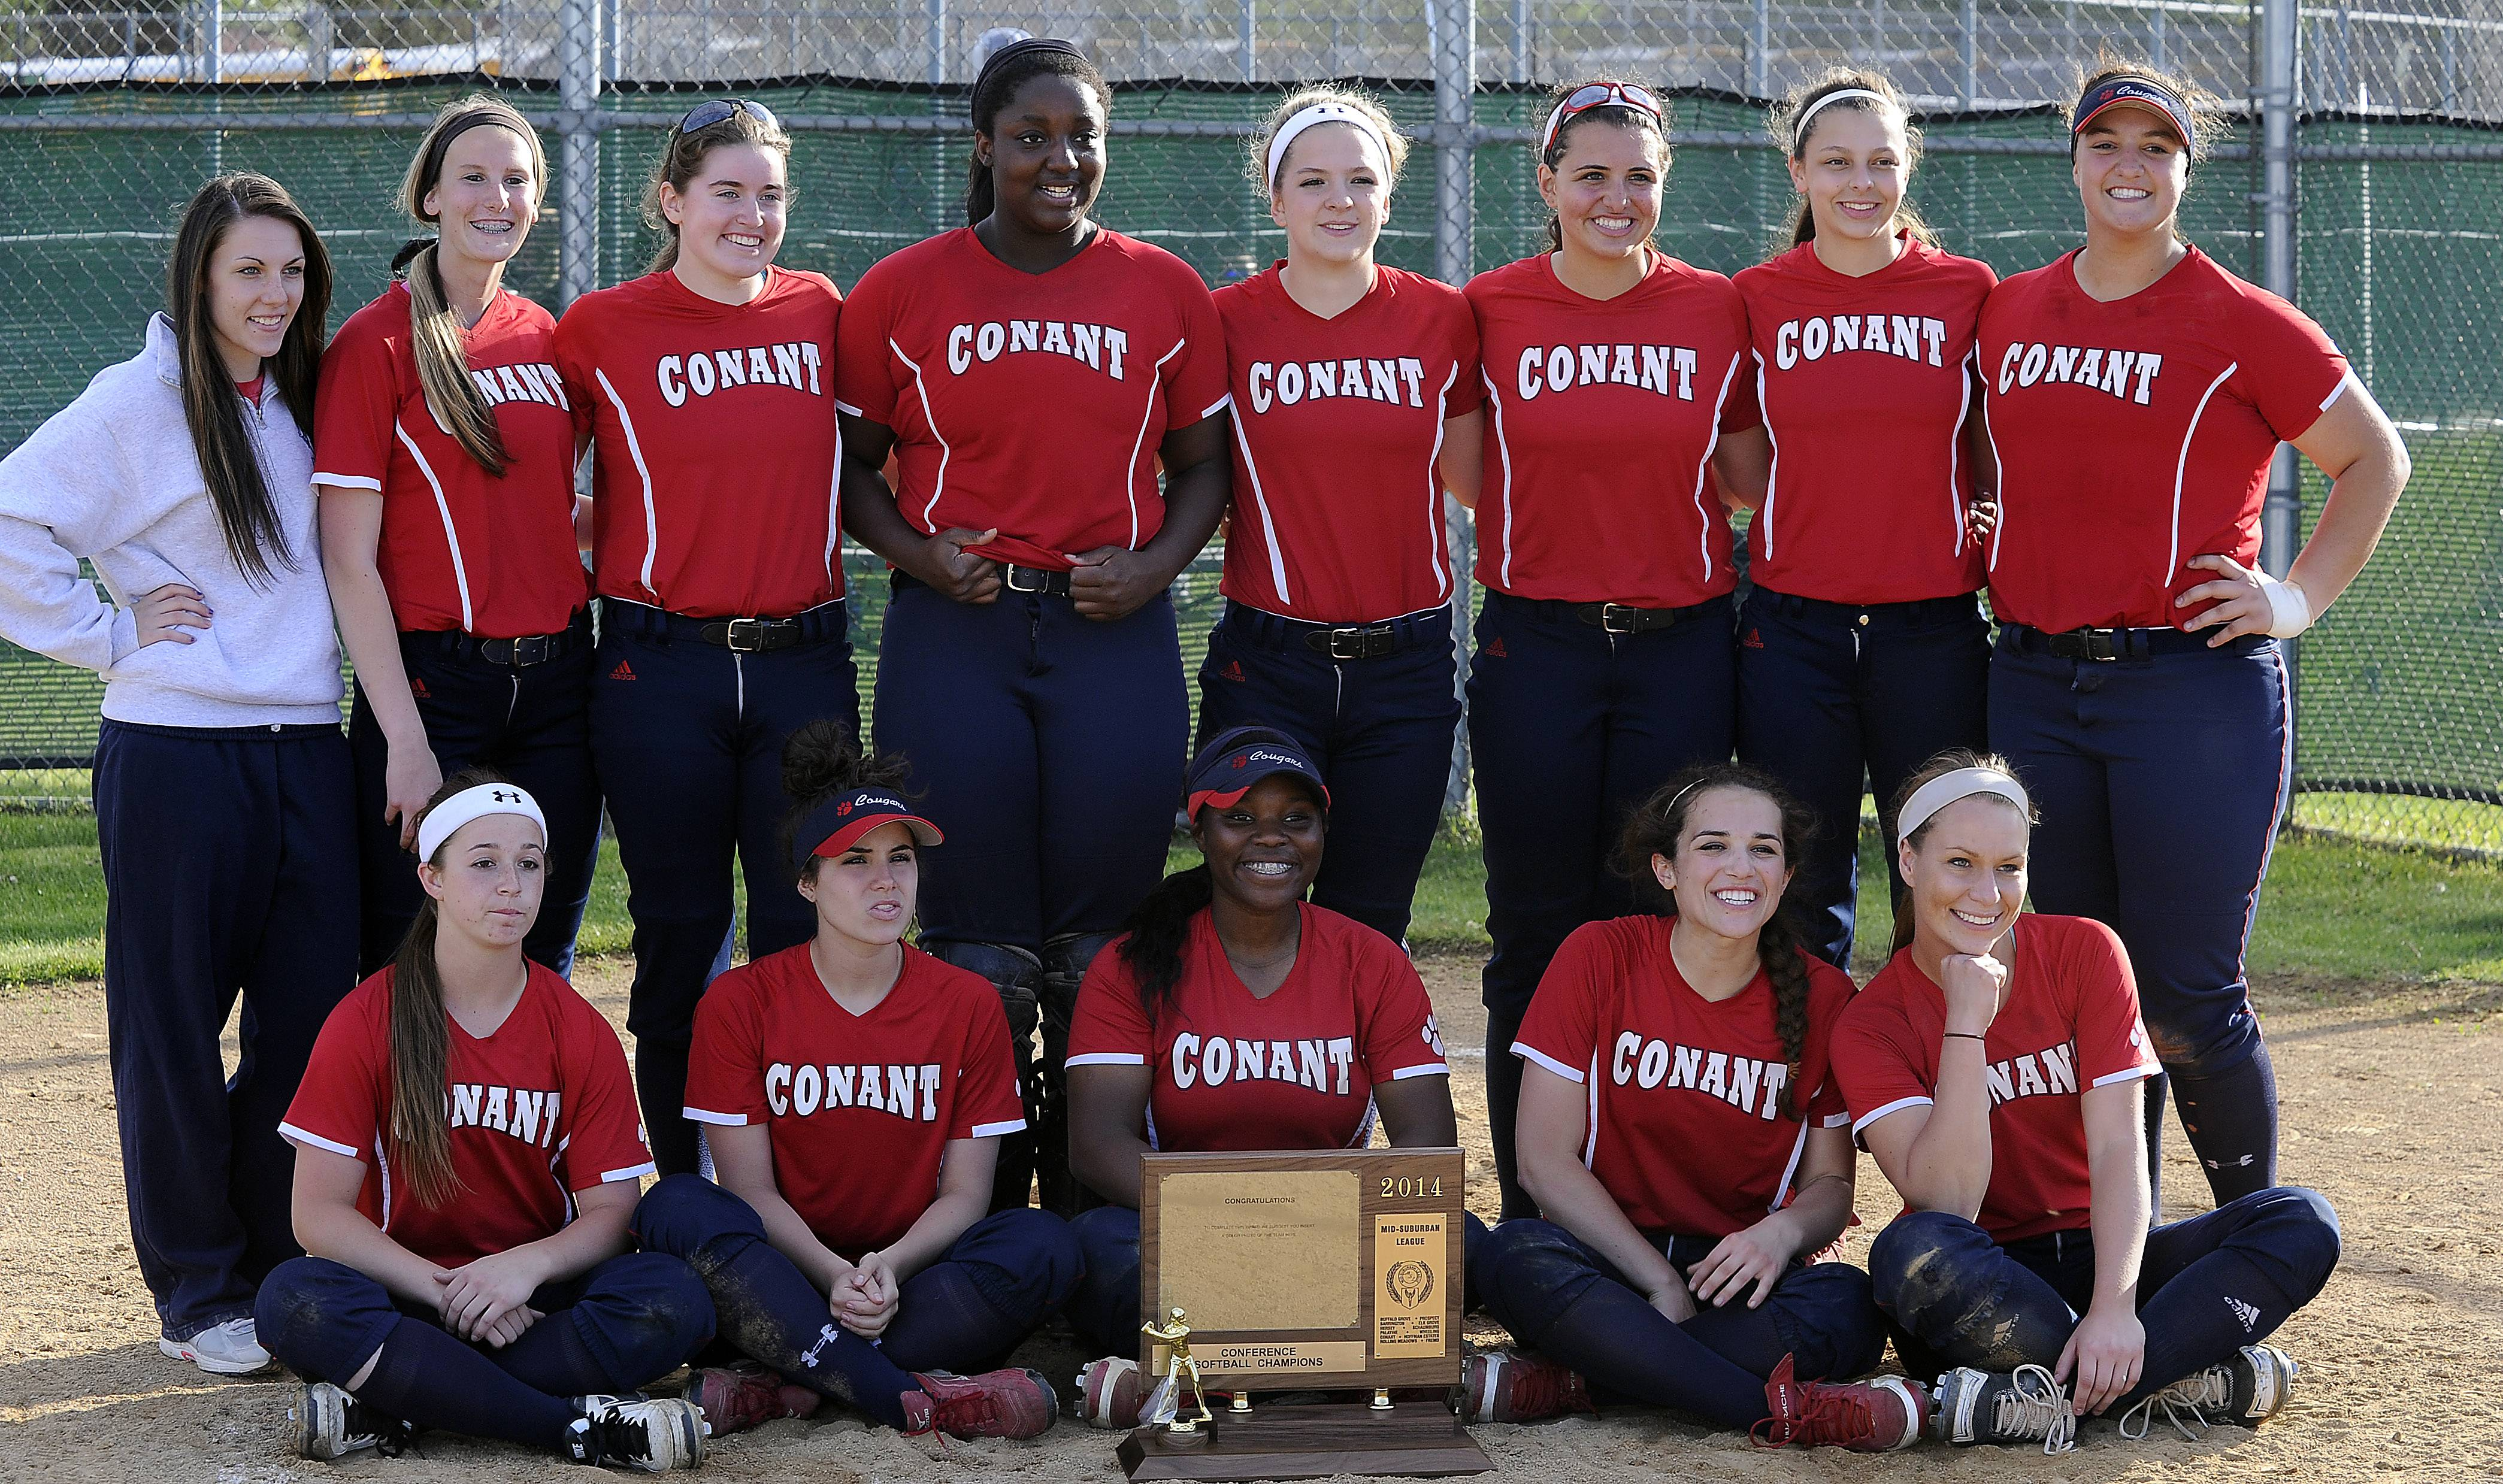 Conant is the Mid-Suburban League softball champion.